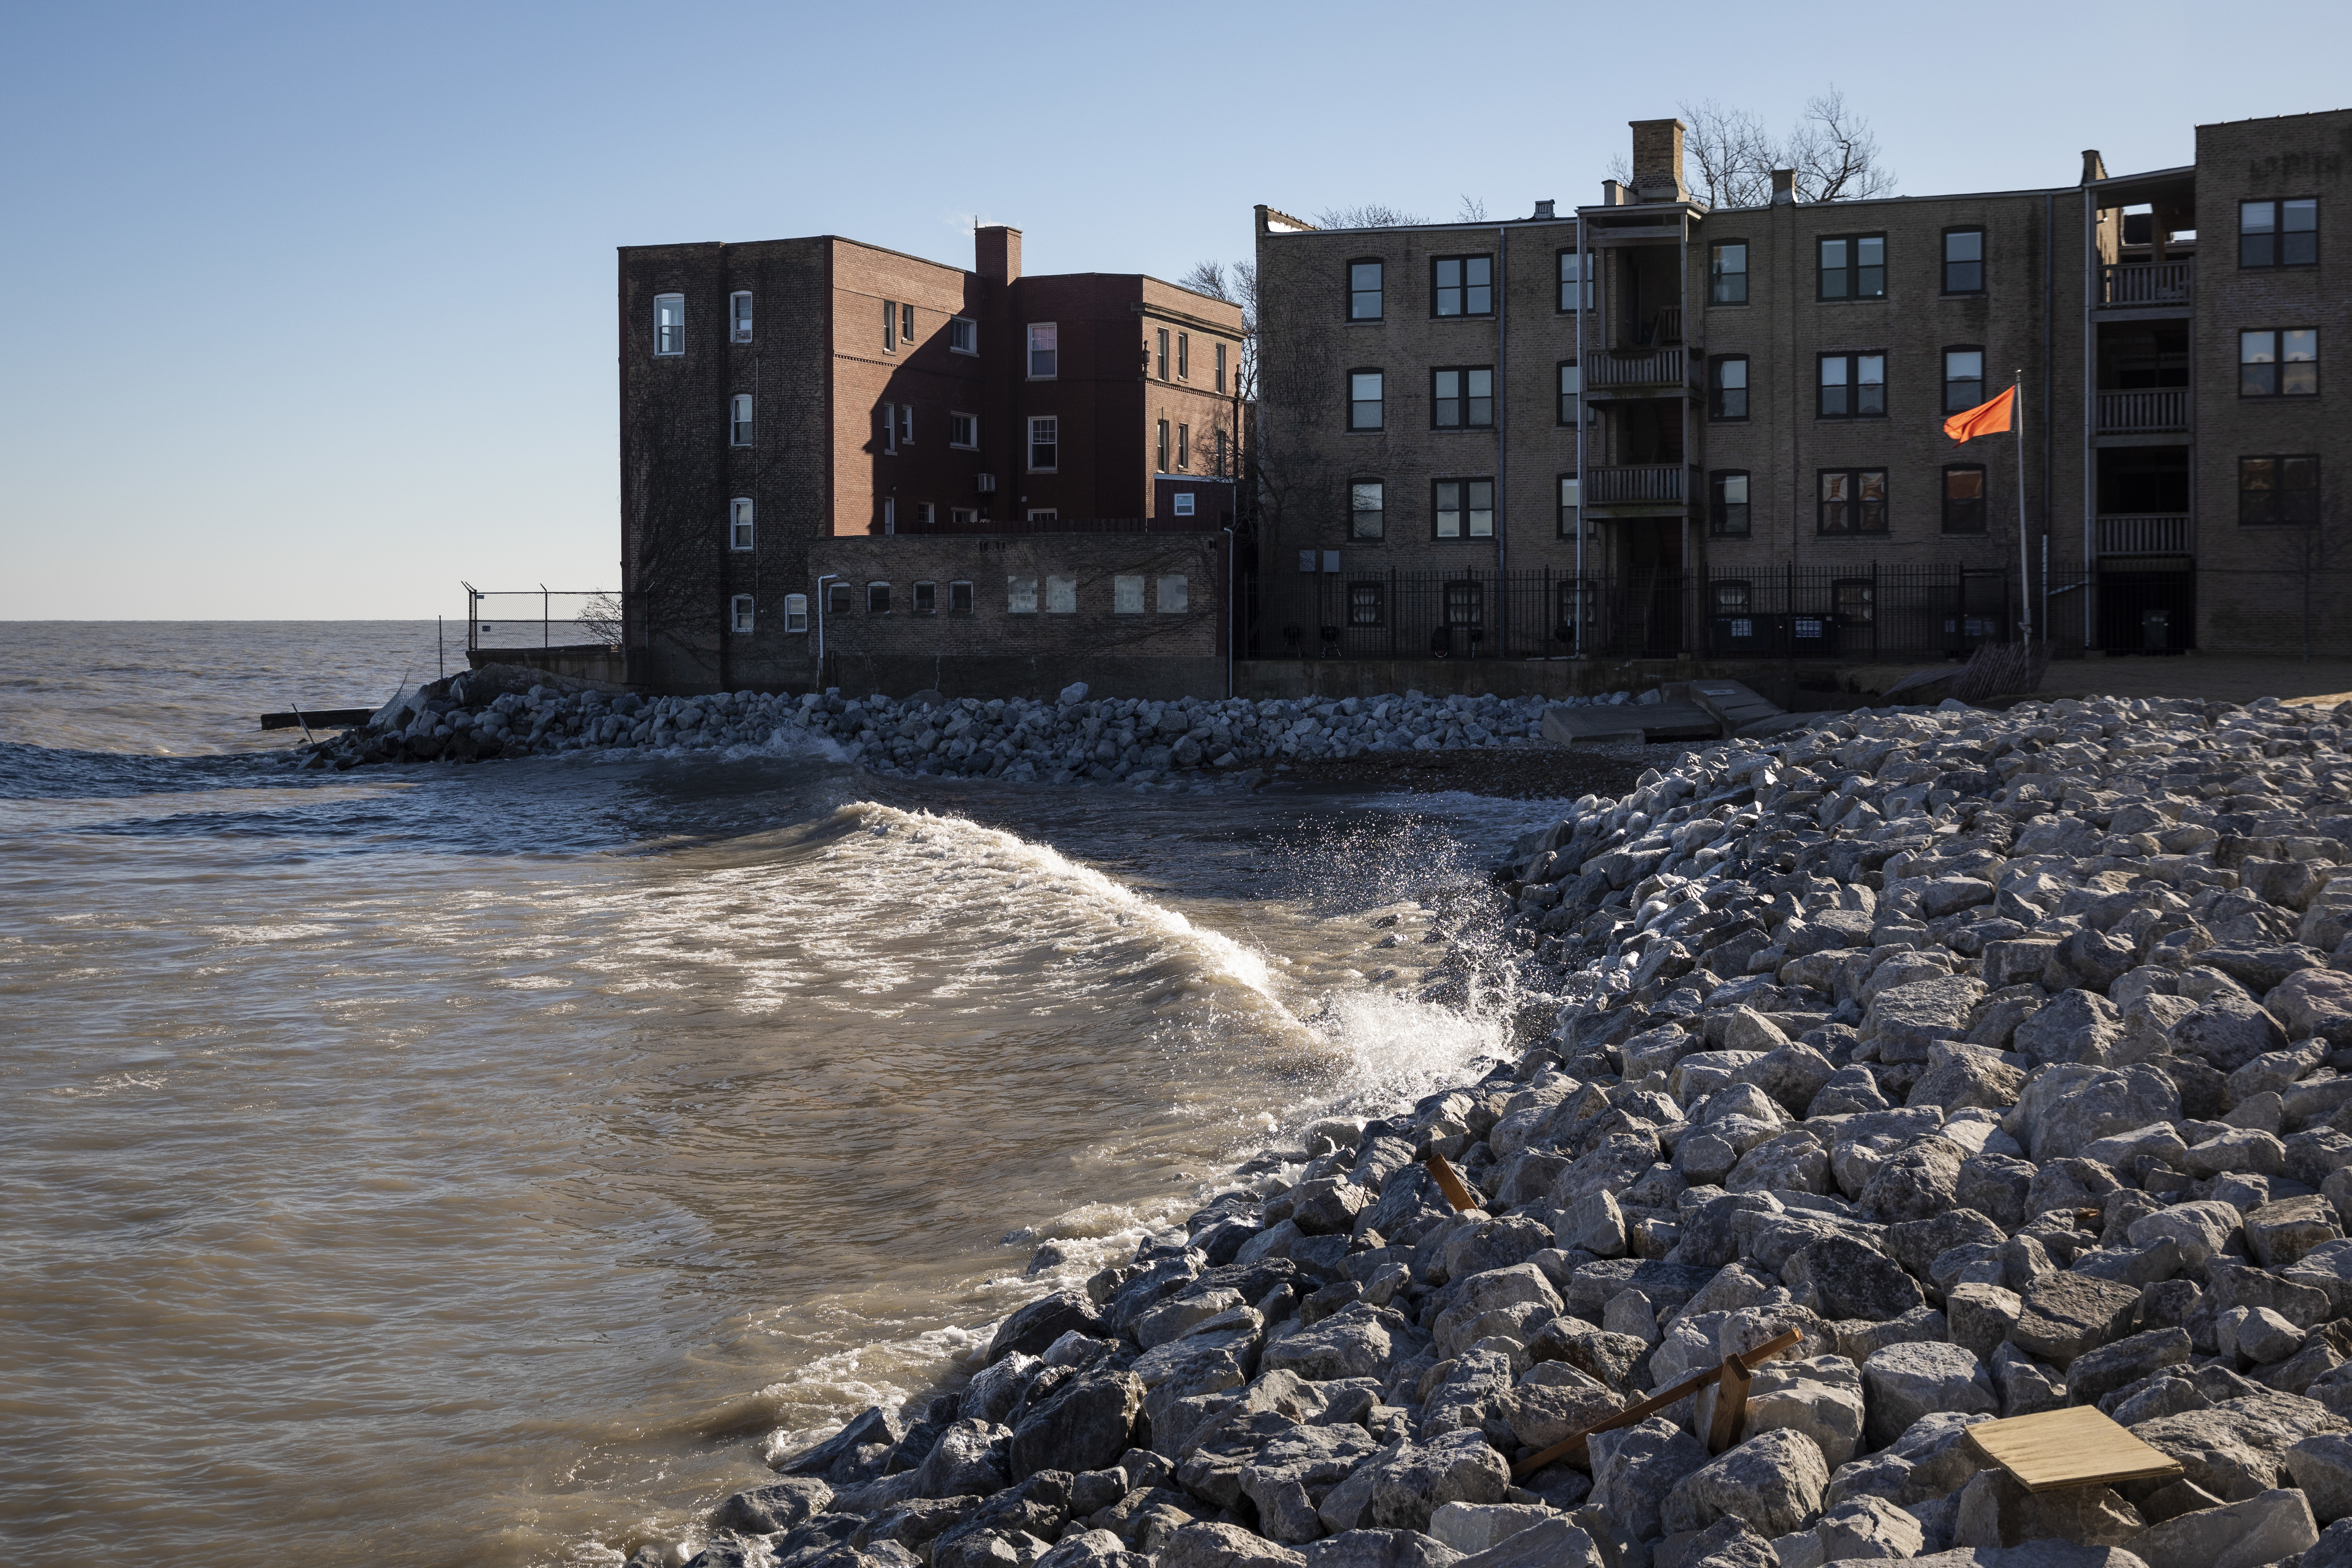 Howard Beach was closed to the public after suffering erosion due to powerful storms in the Chicago area last week, Thursday afternoon, Jan. 16, 2020. Boulders were dumped on the beach as a buffer against on-going erosion.